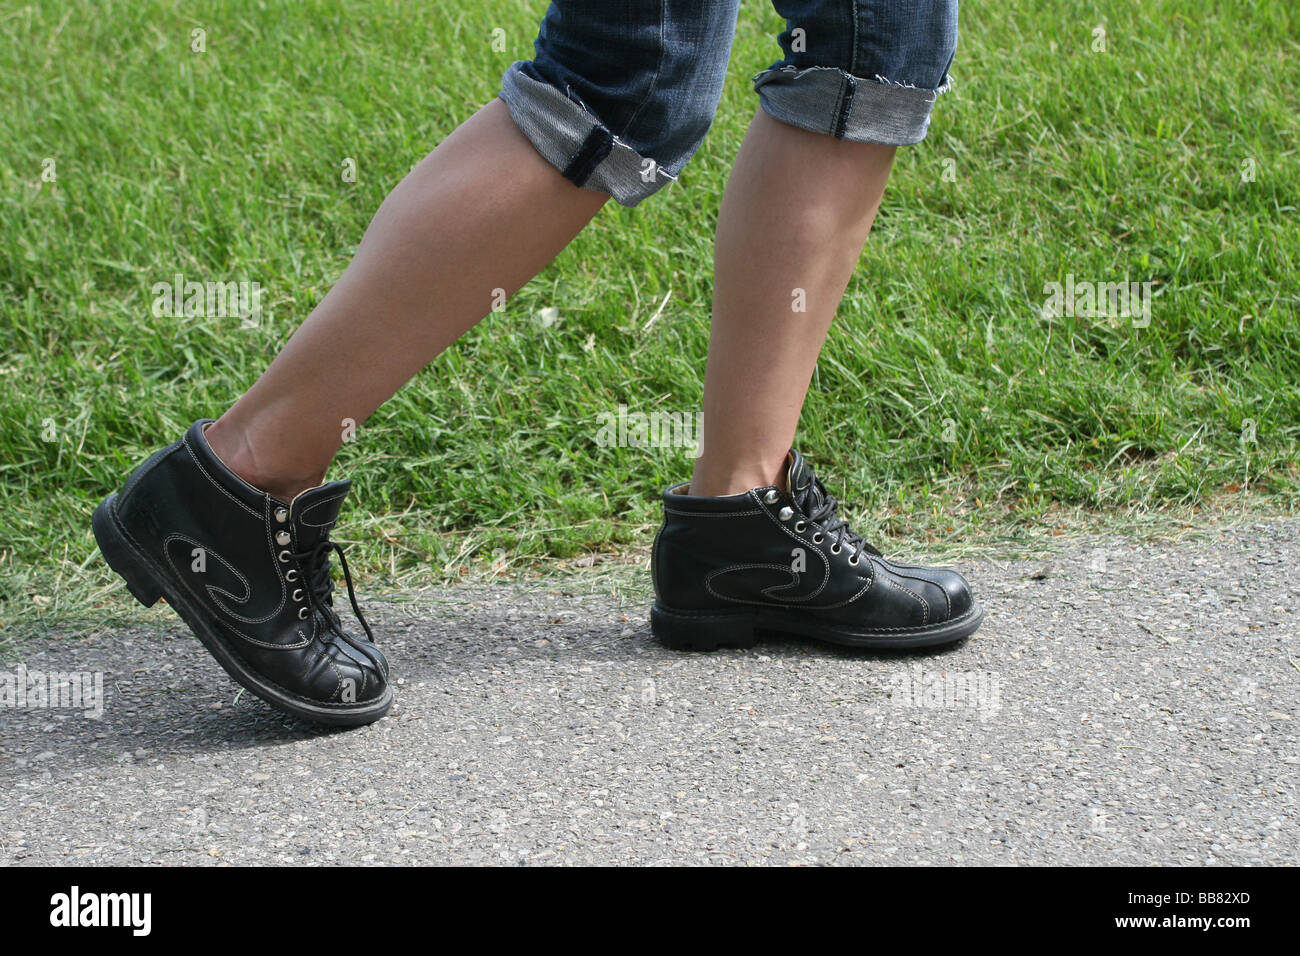 female hiker wearing jeans and and hiking boots walking on a paved pathway - Stock Image